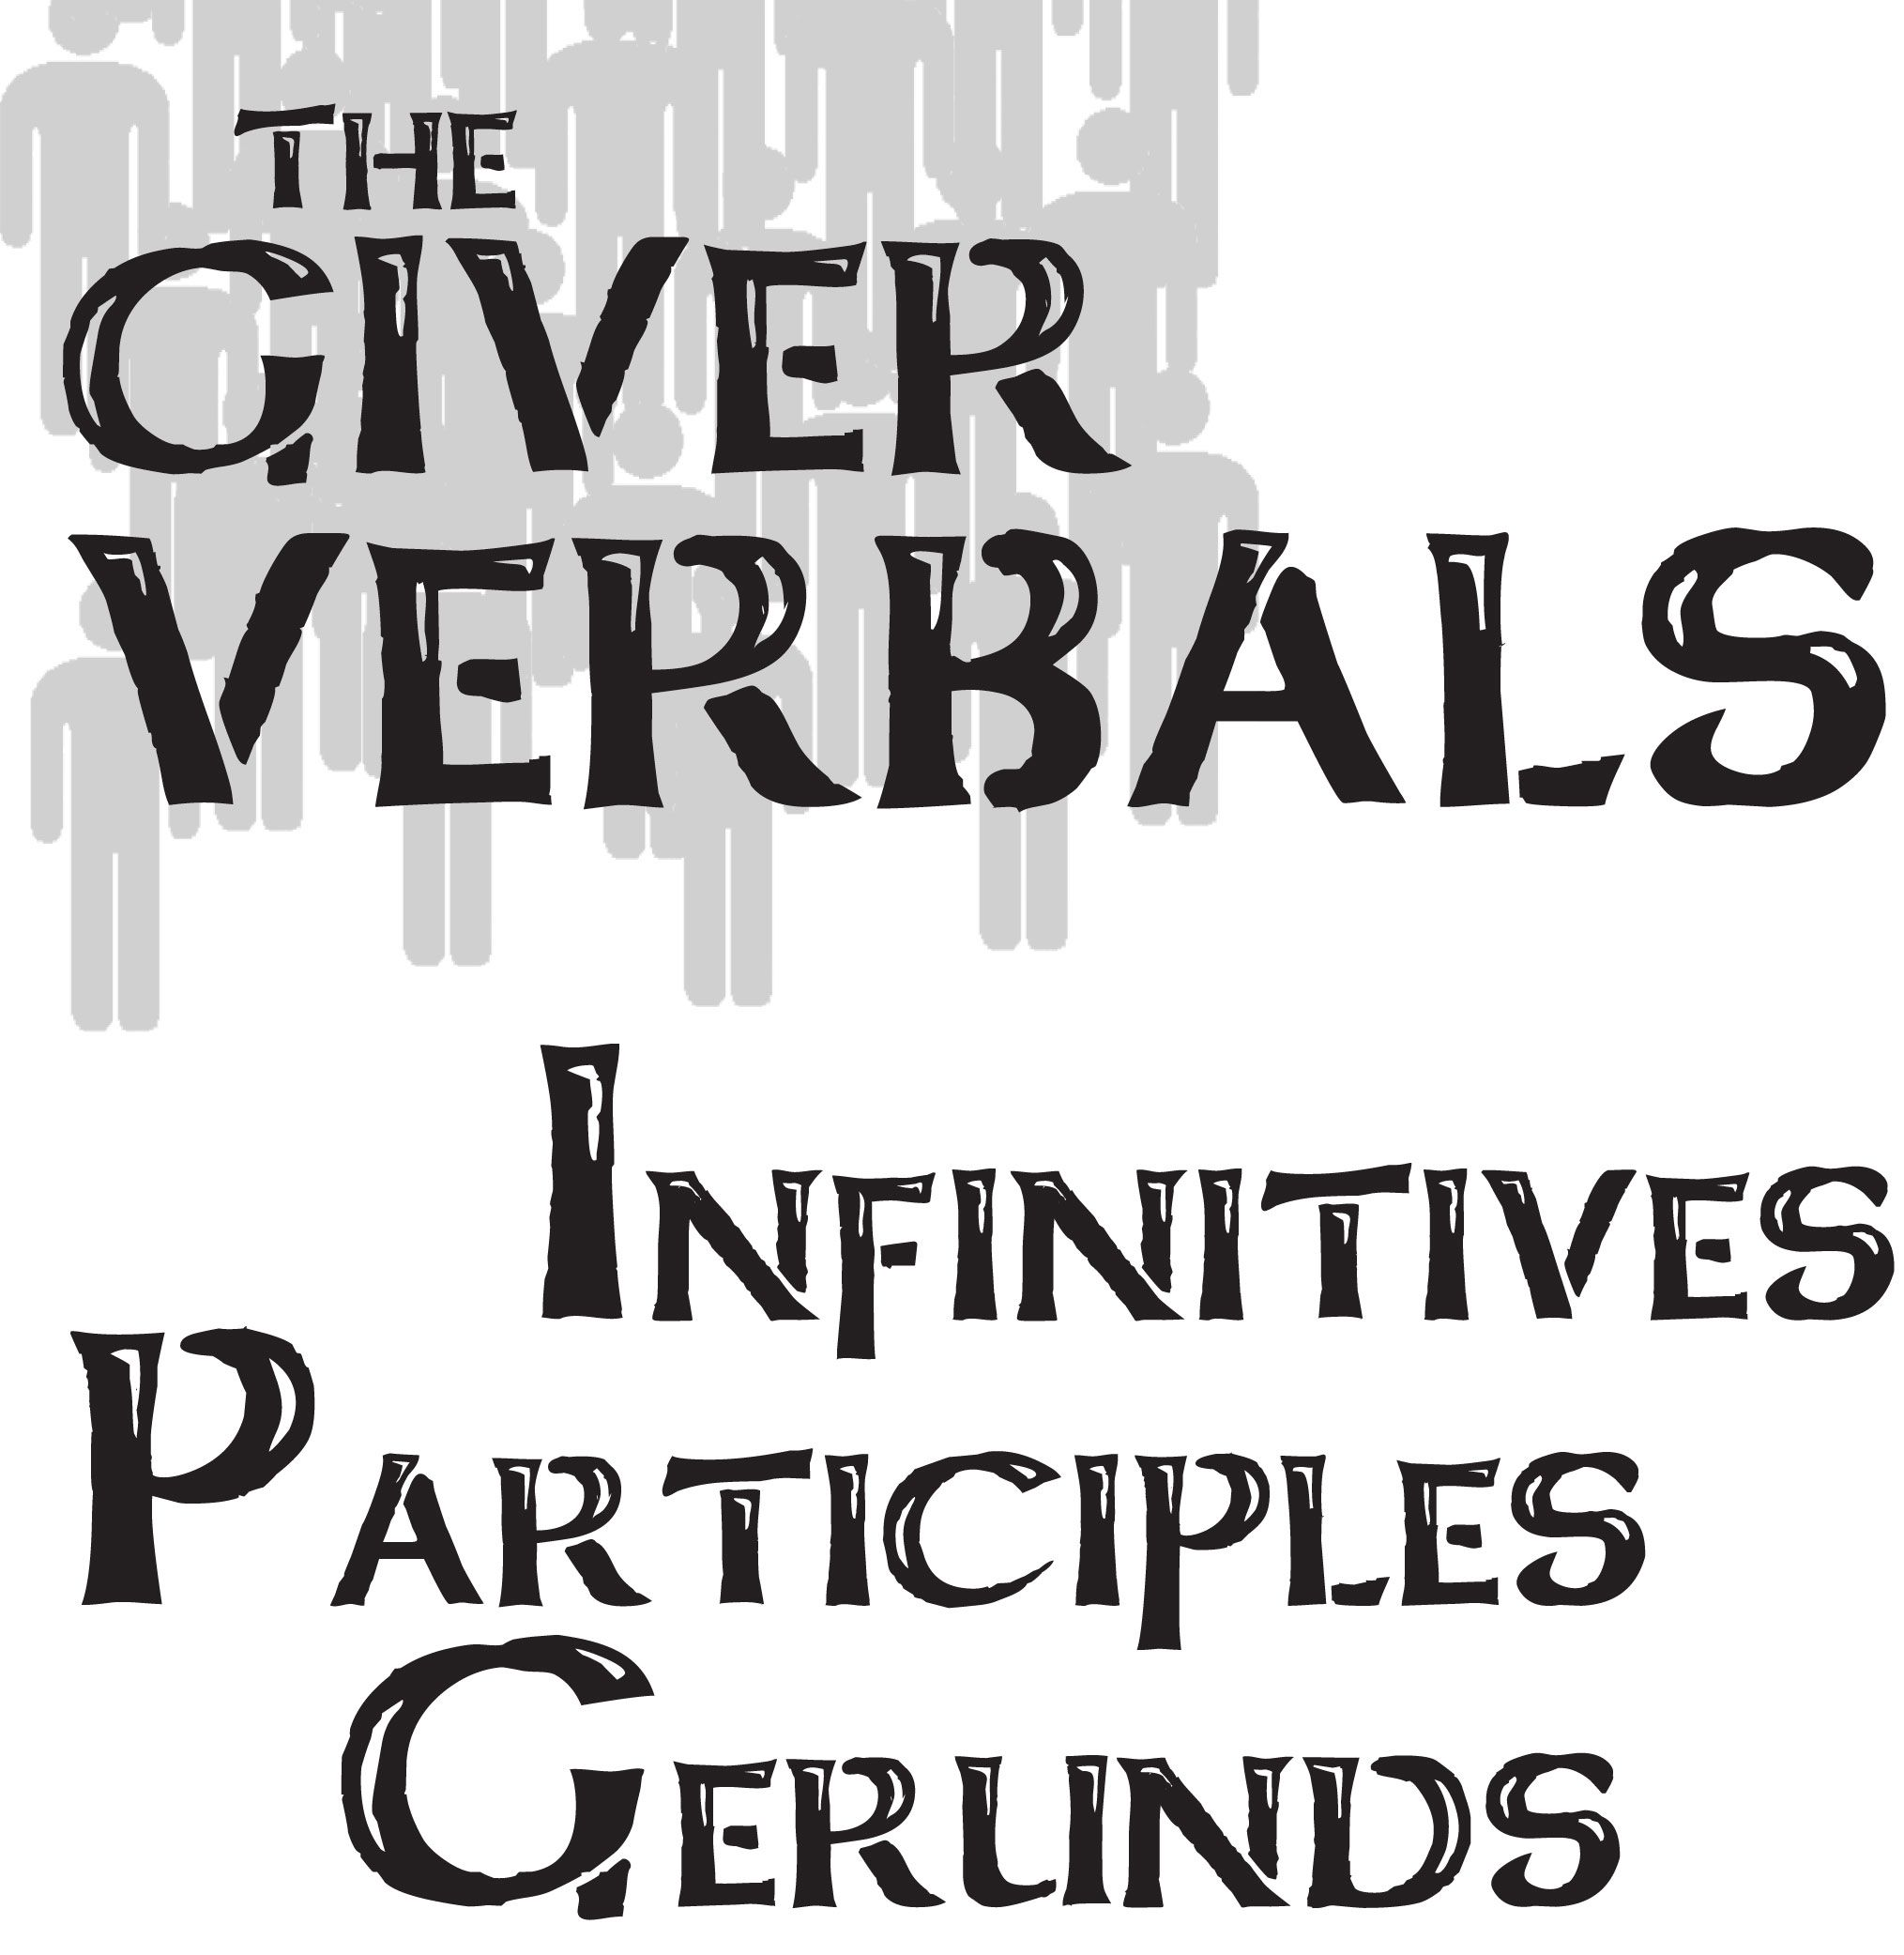 THE GIVER Verbals (Infinitives, Participles, Gerunds